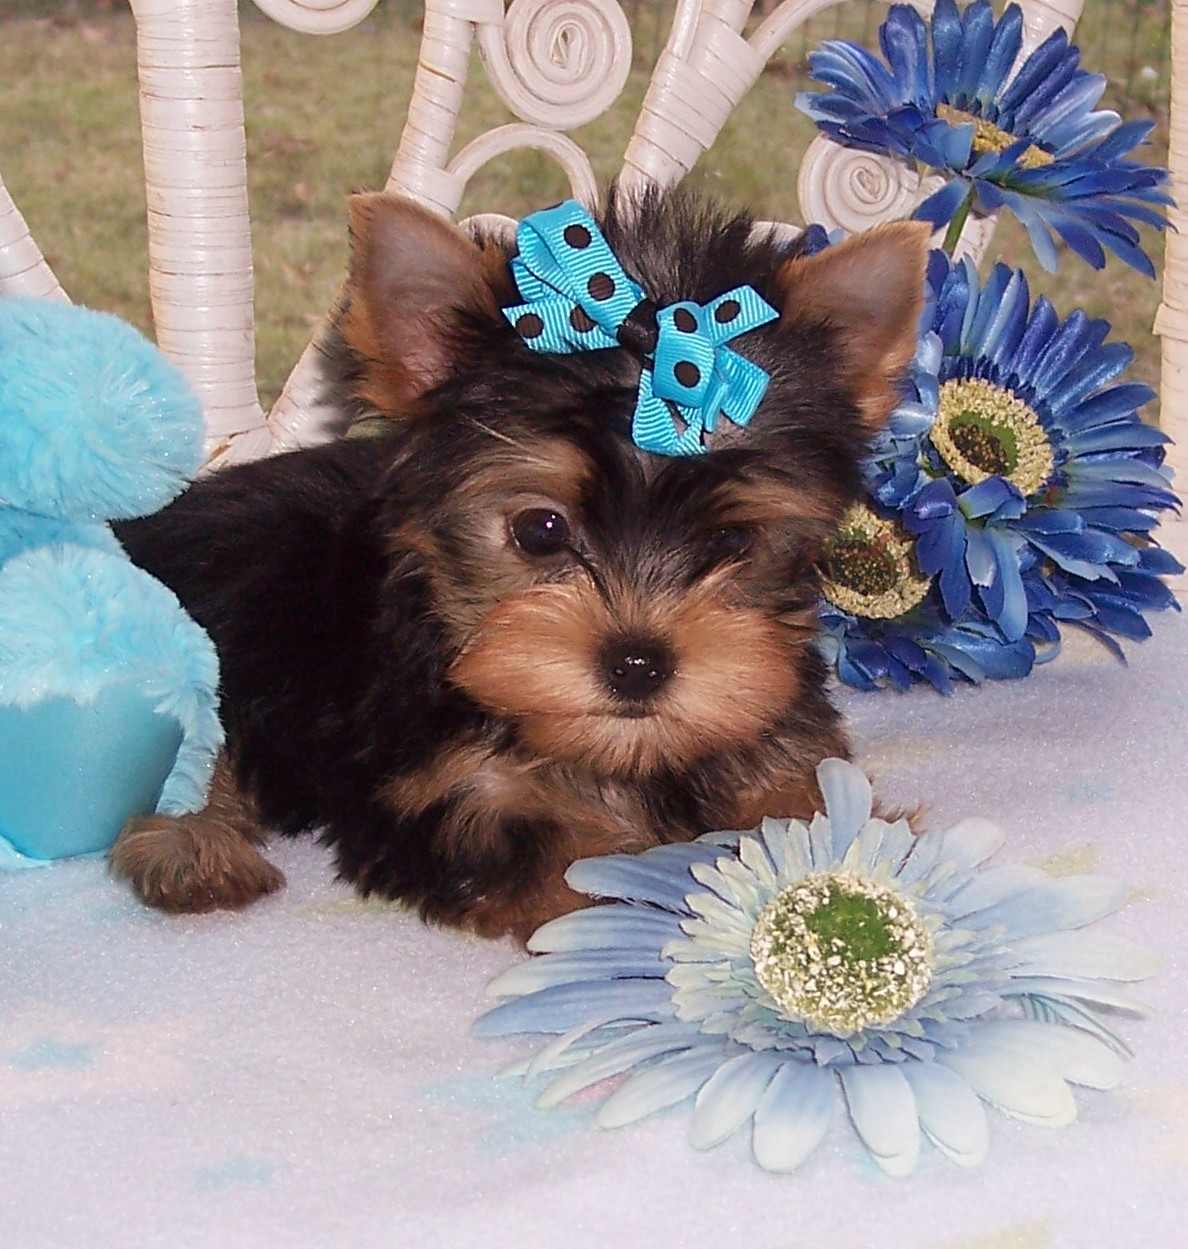 1024x768 wallpaper of yorkies - photo #23